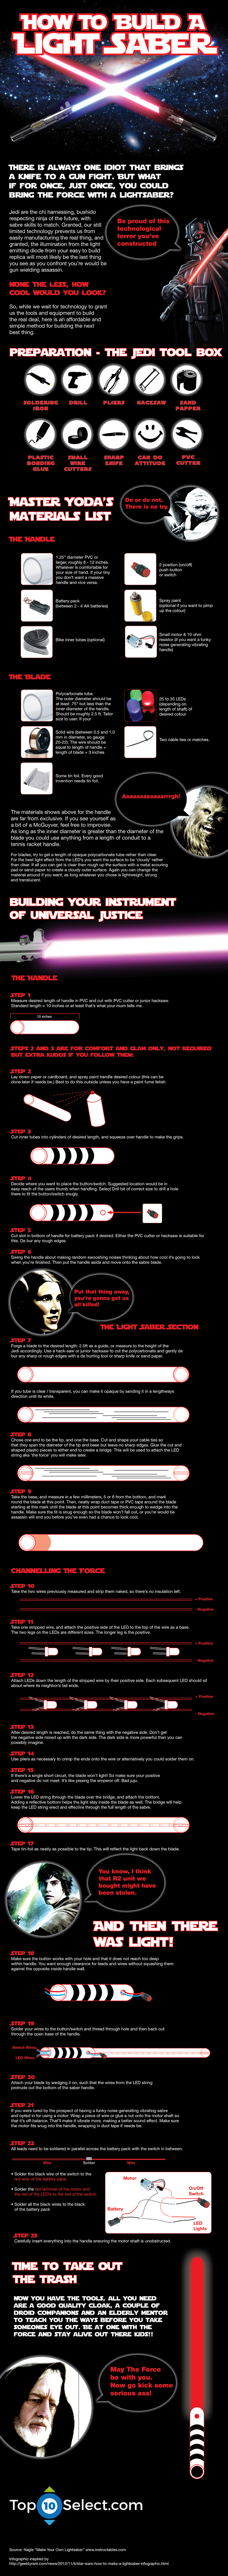 how-to-build-a-light-saber-infographic